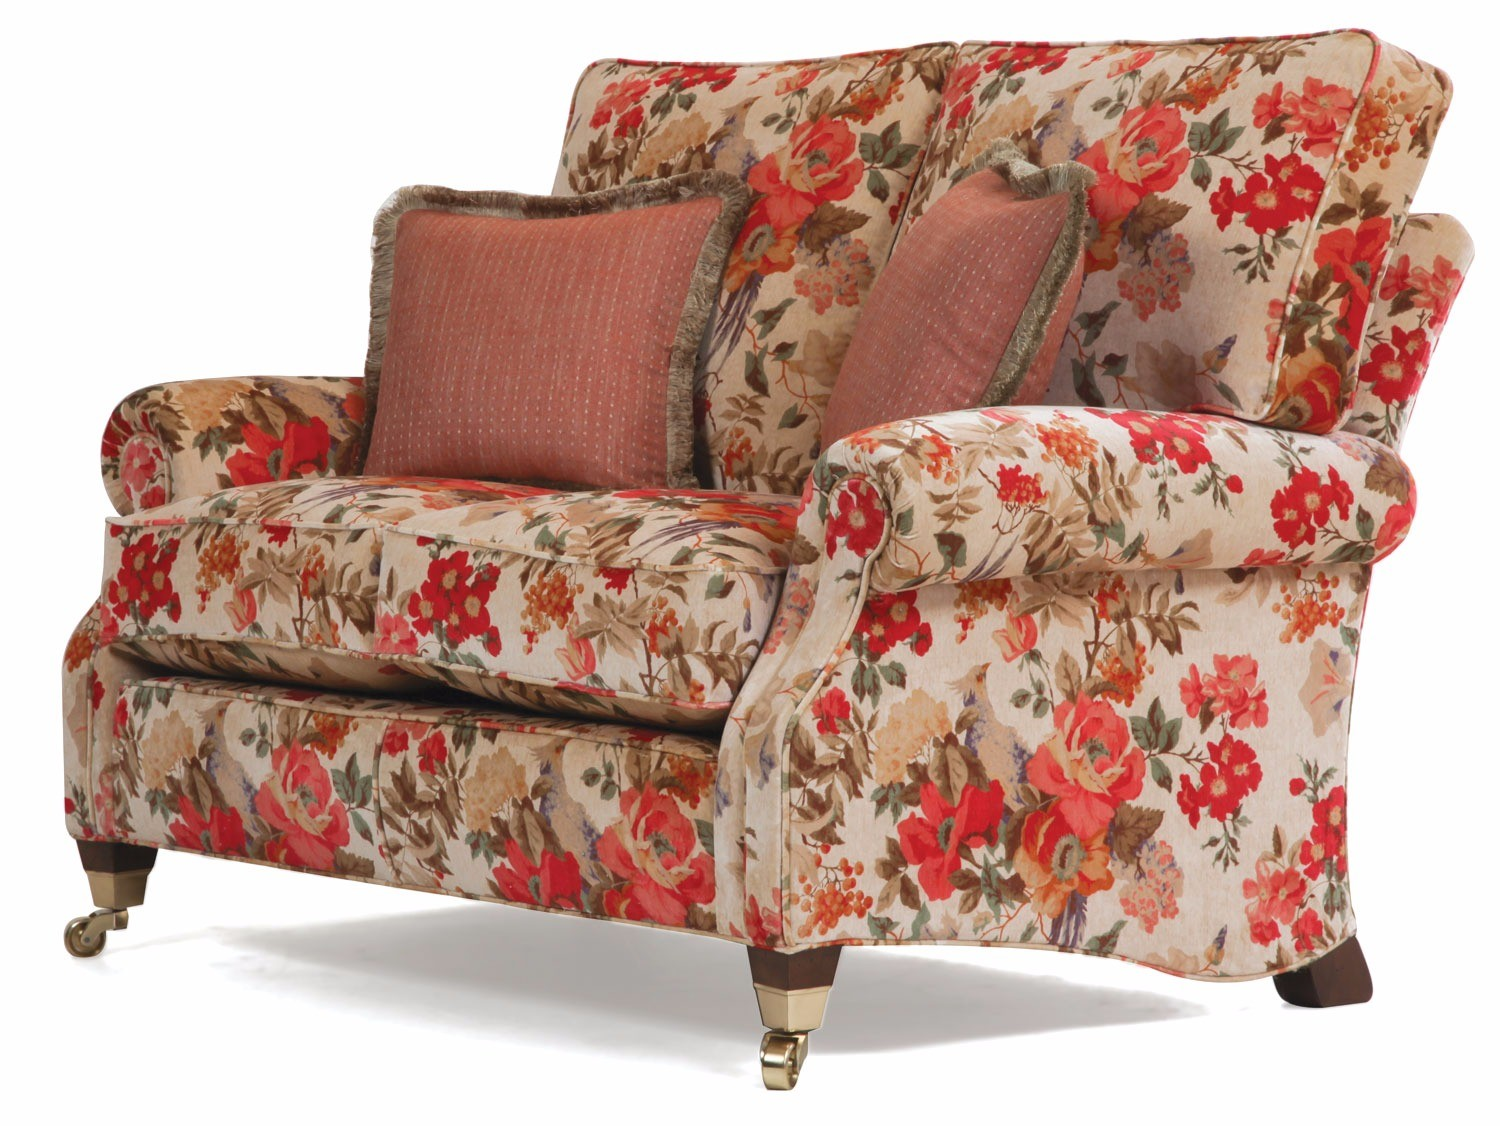 Monet 2 Seat Sofa In An Antiqued Velvet Print Fabric